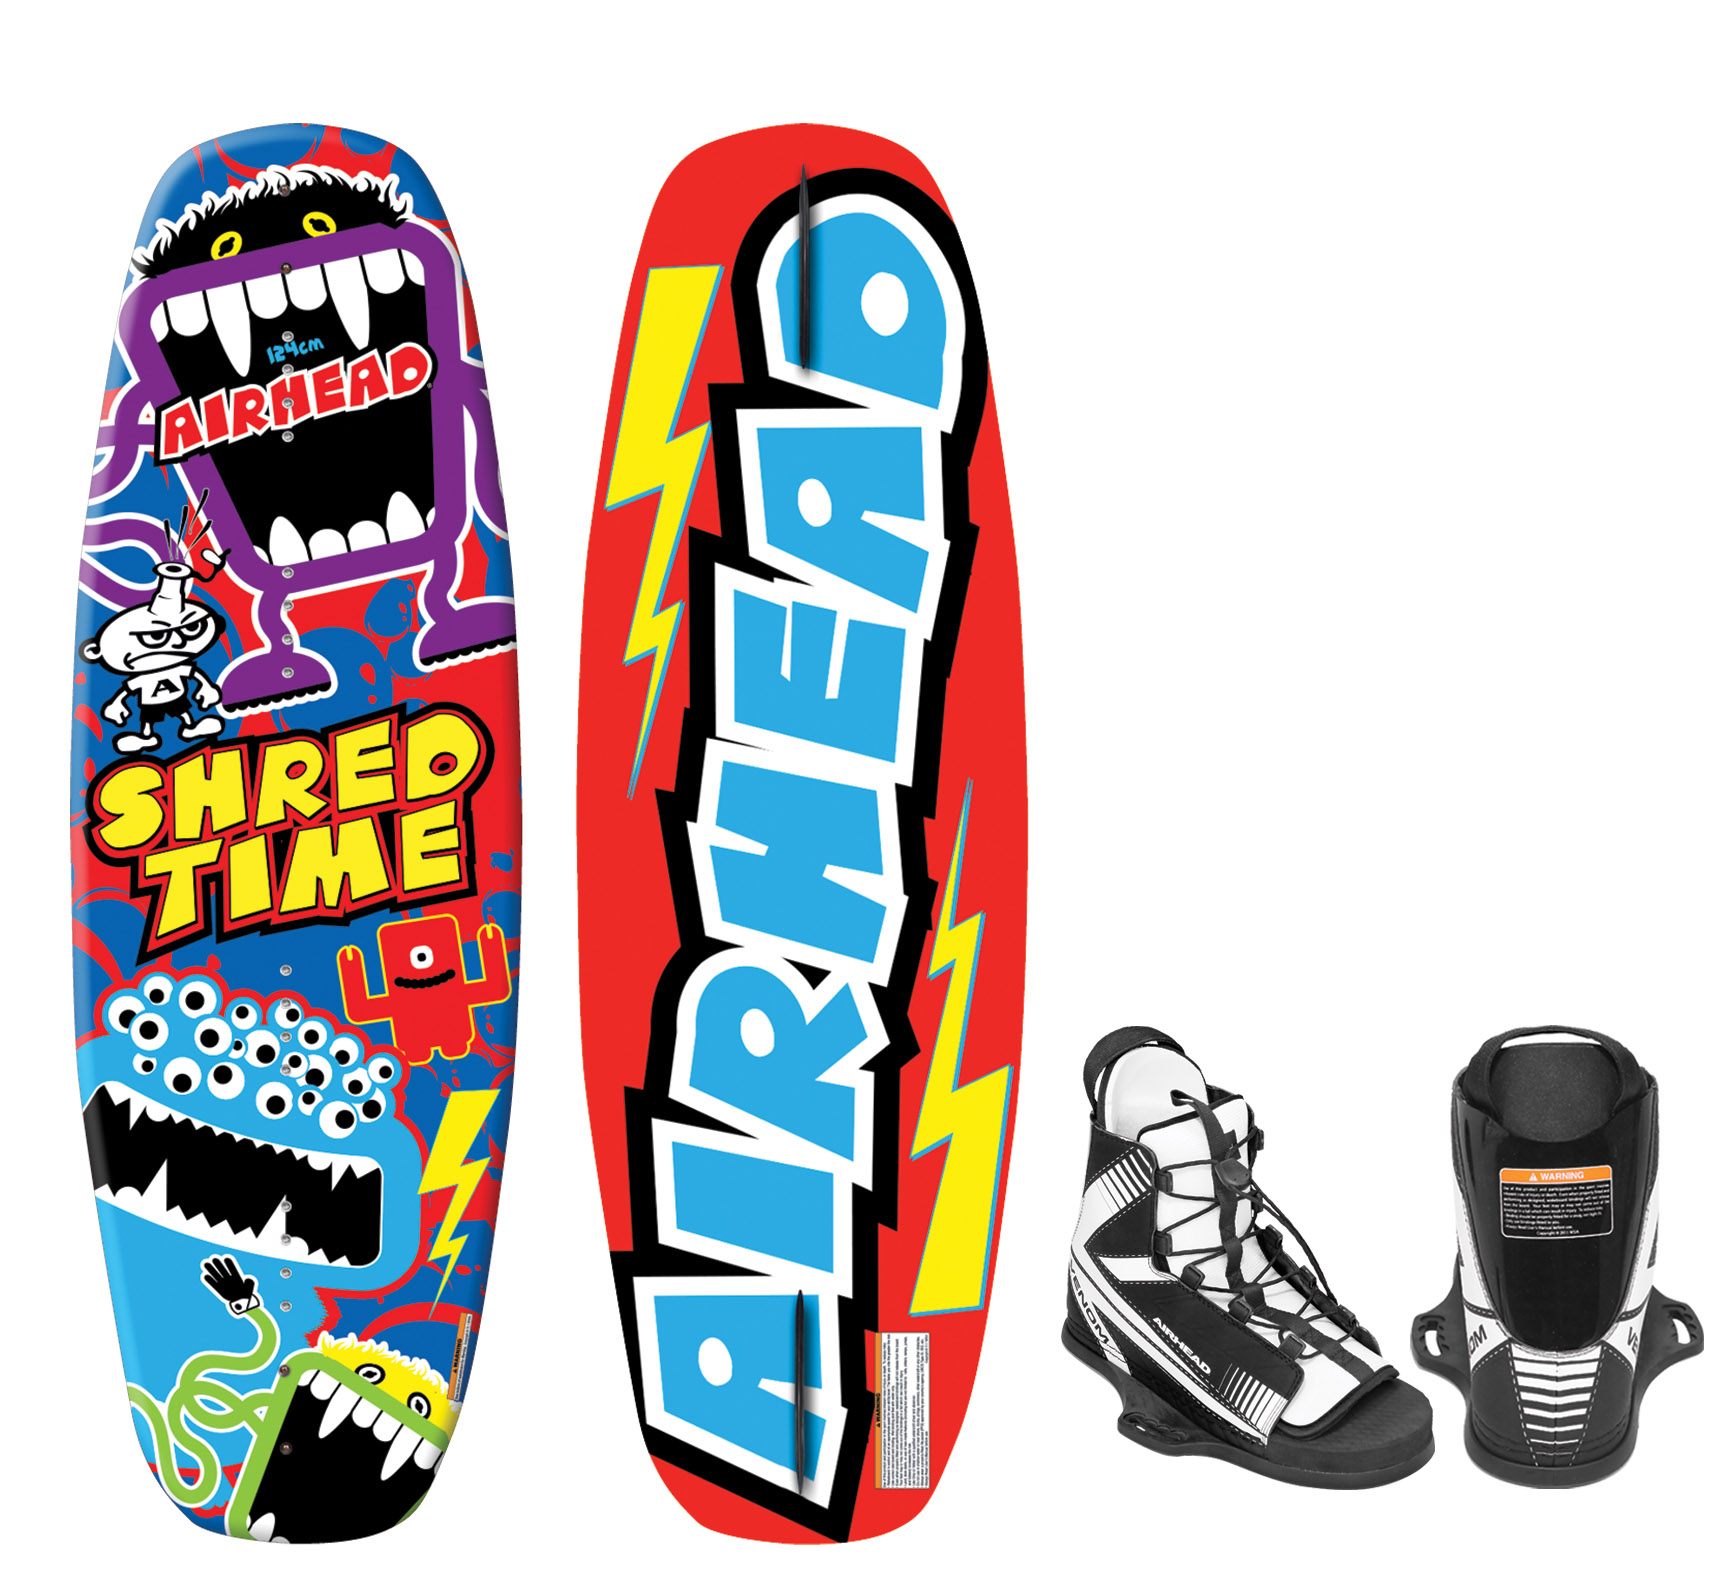 SHRED TIME Wakeboard w VENOM Binding 4-8 by AIRHEAD SPORTS GROUP